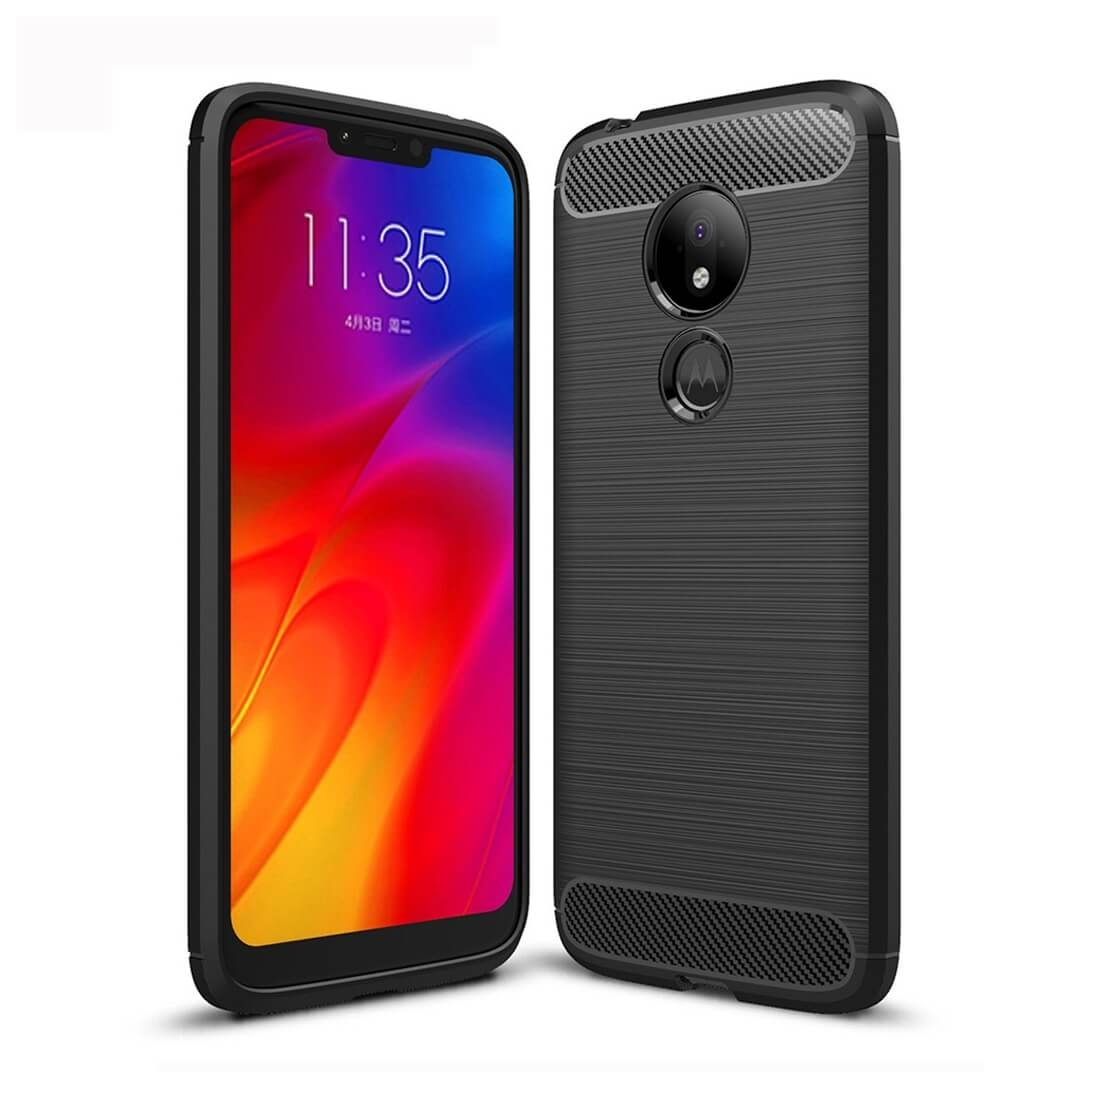 FORCELL FLEXI TPU Kryt Motorola Moto G7 Power černý